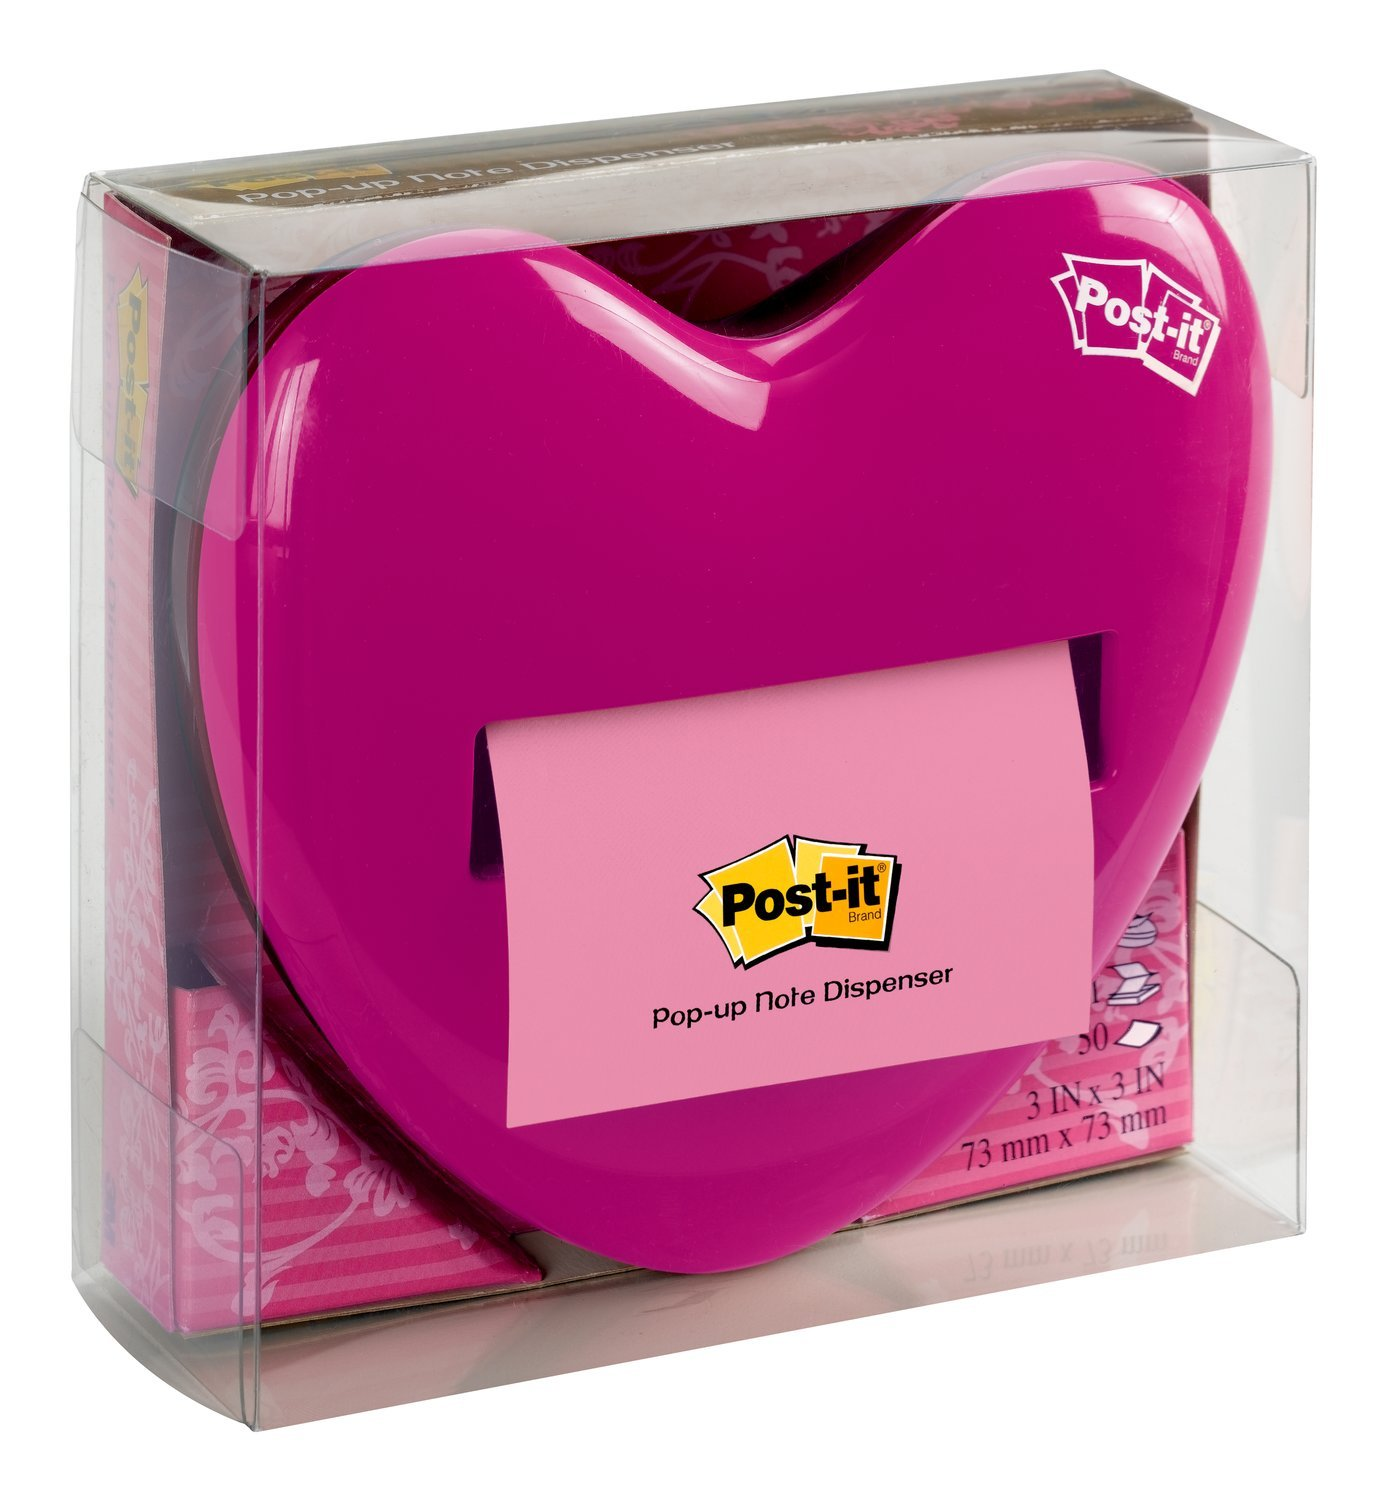 Post-it Pop-up Notes Dispenser for 3 x 3-Inch Notes, Pink, Heart Shape by Post-it